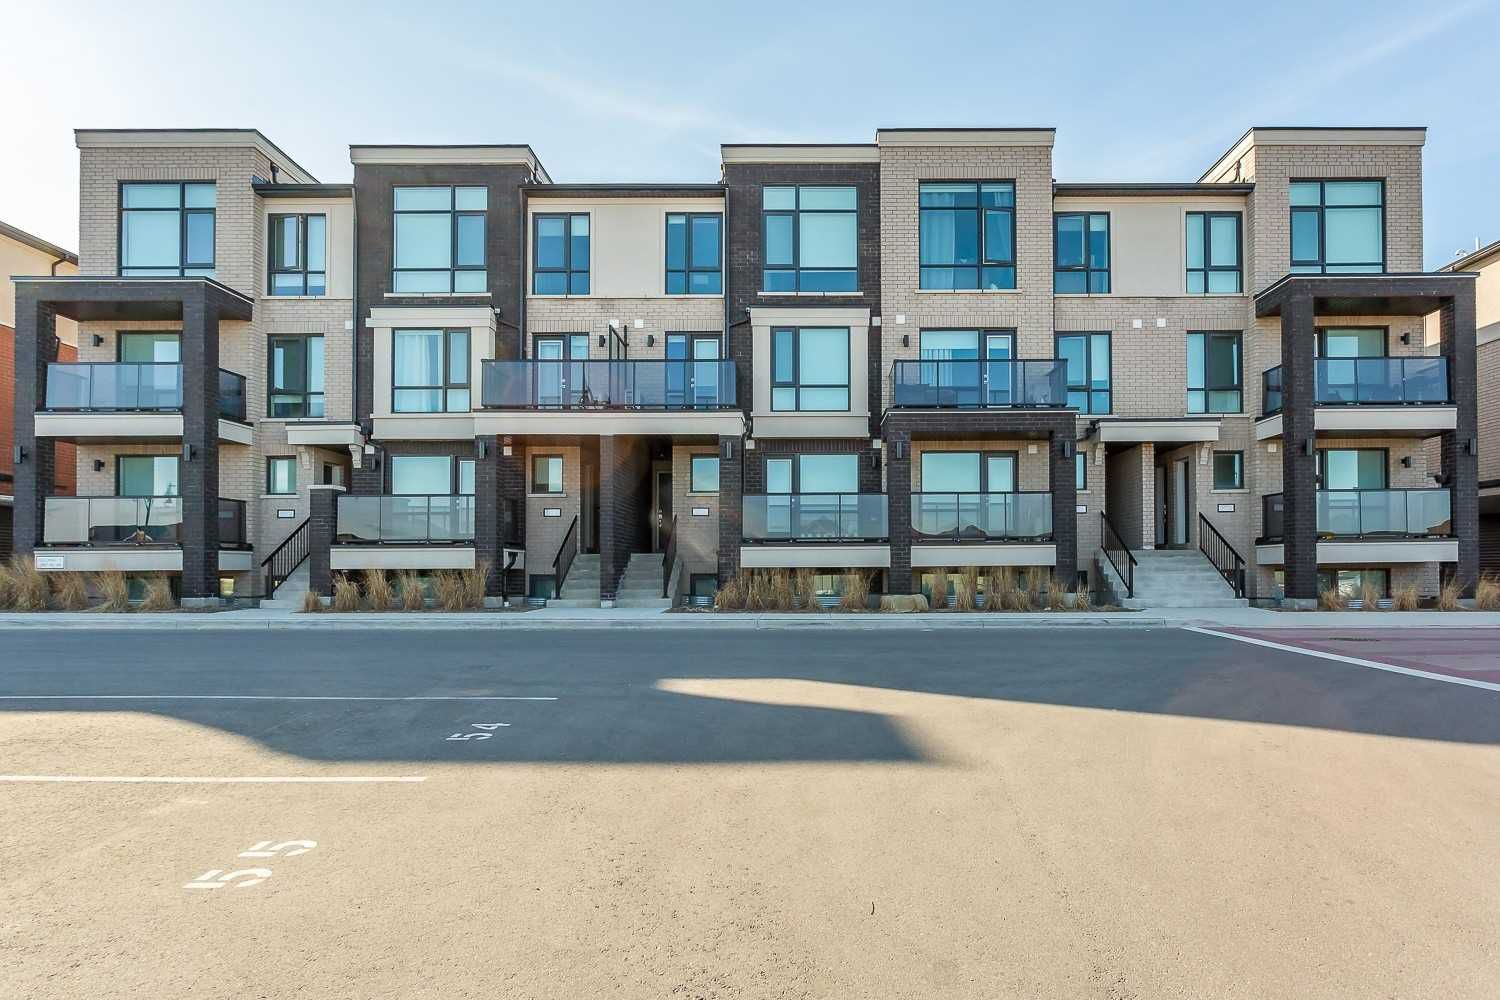 Main Photo: 55 100 Dufay Road in Brampton: Northwest Brampton Condo for sale : MLS®# W4416211